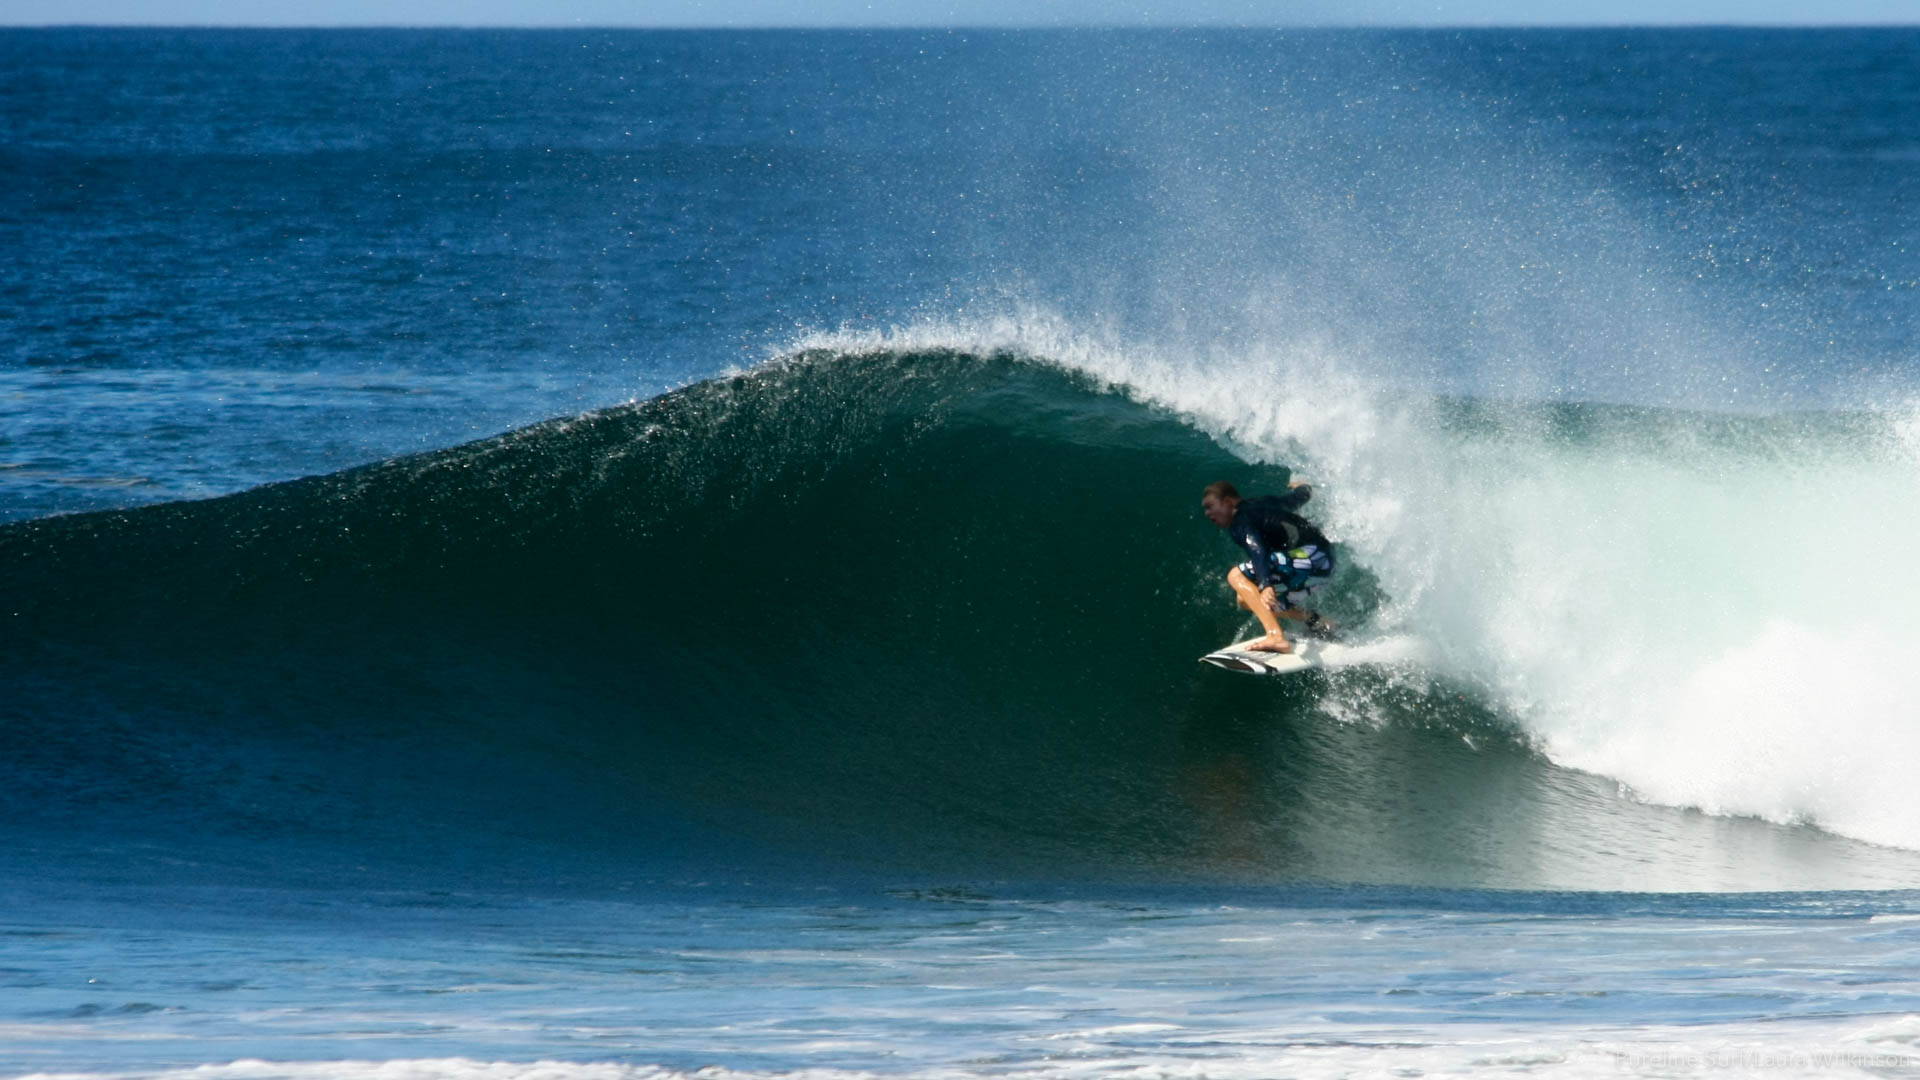 A dreamy blue wave in Nosara Costa Rica. A popular destination for private surf coaching with Pureline Surf.